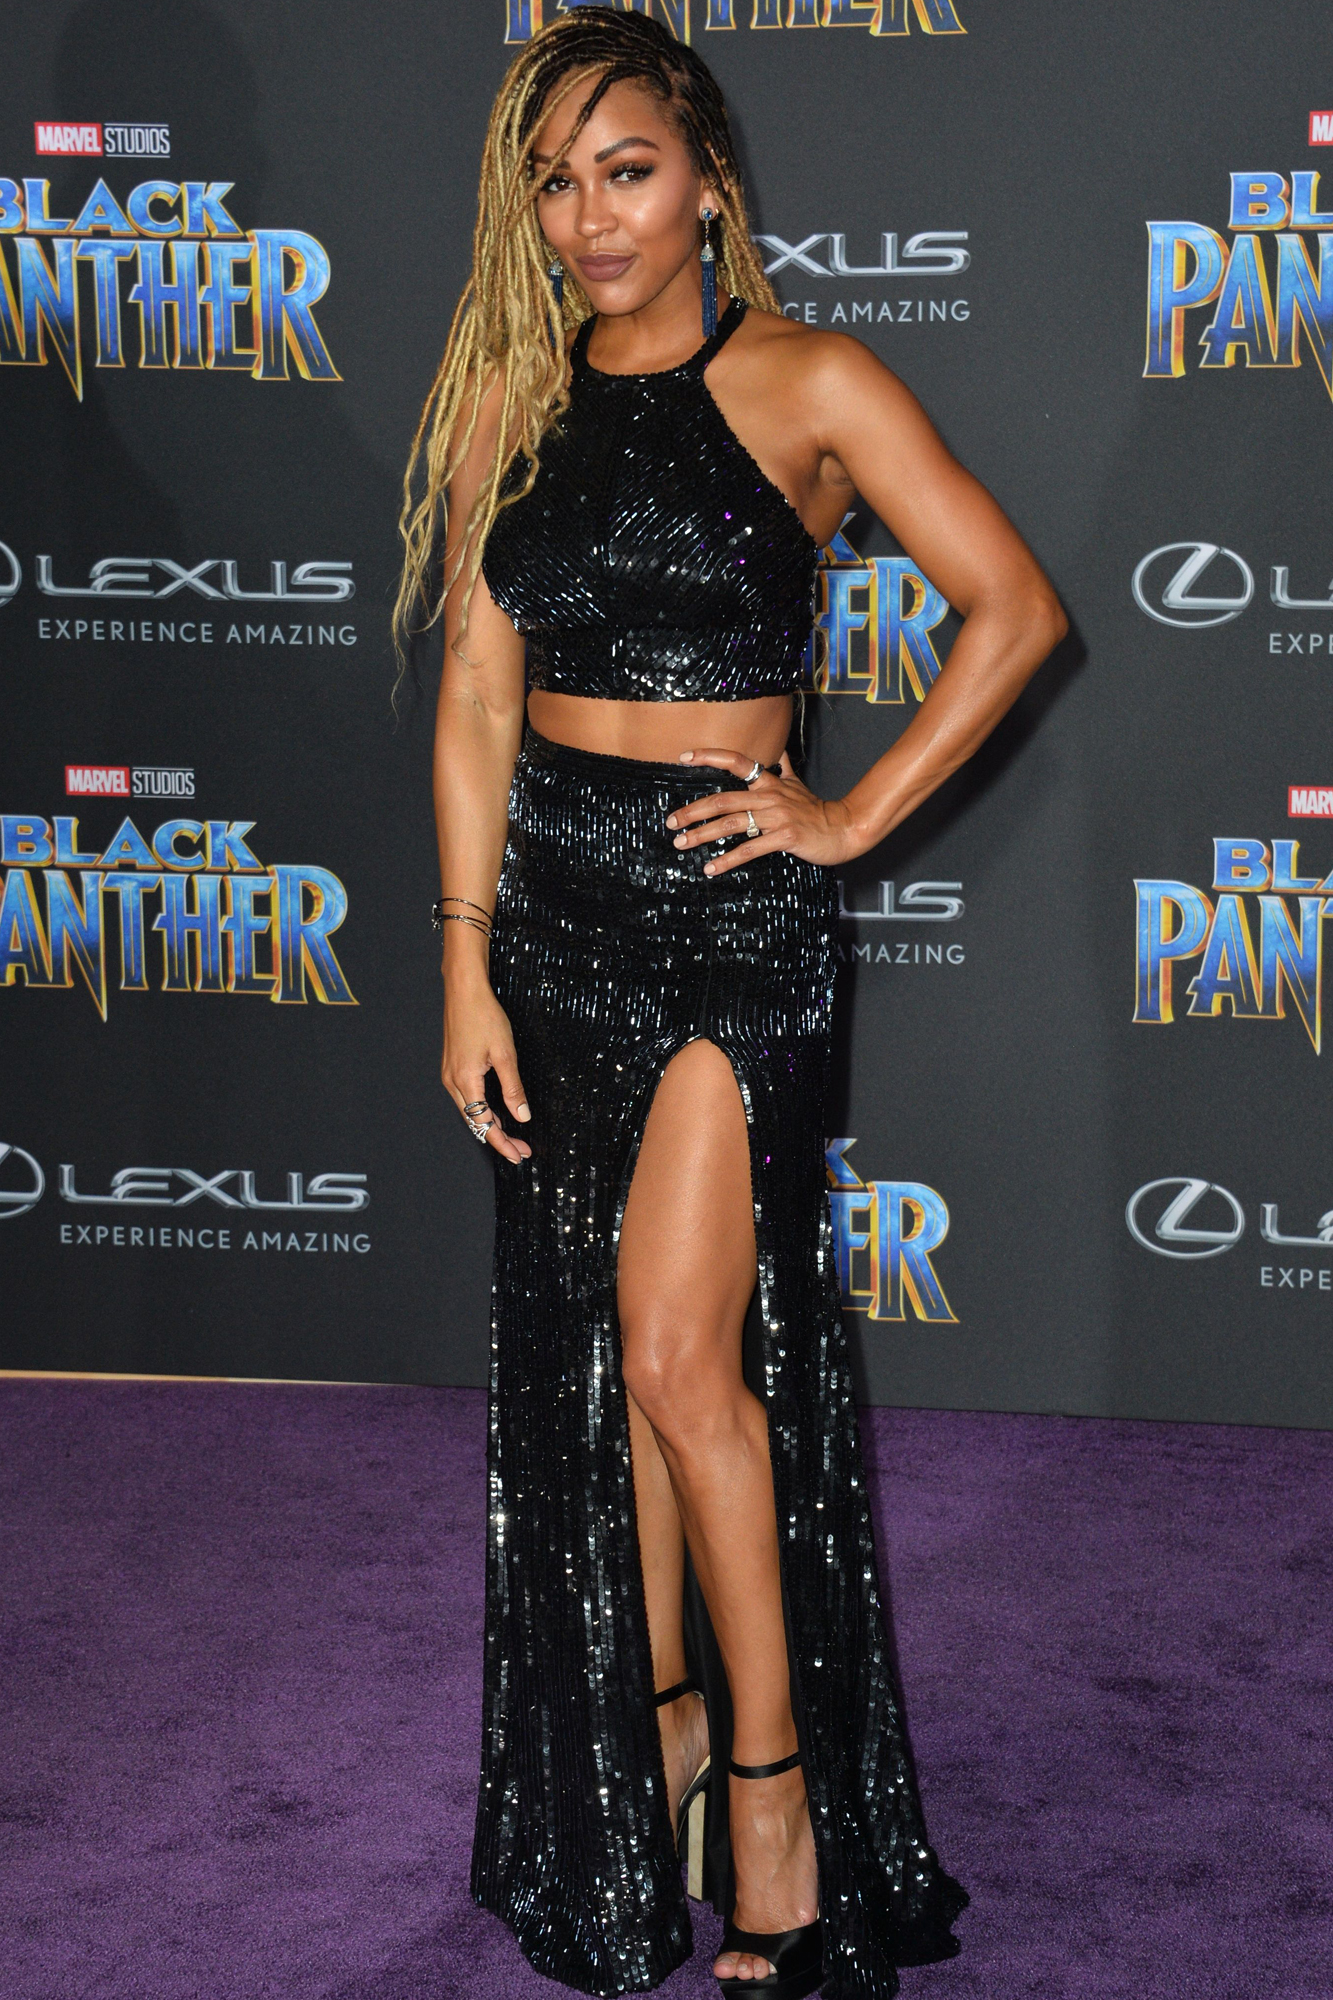 'Black Panther' World Premiere, Los Angeles 29 Jan 2018